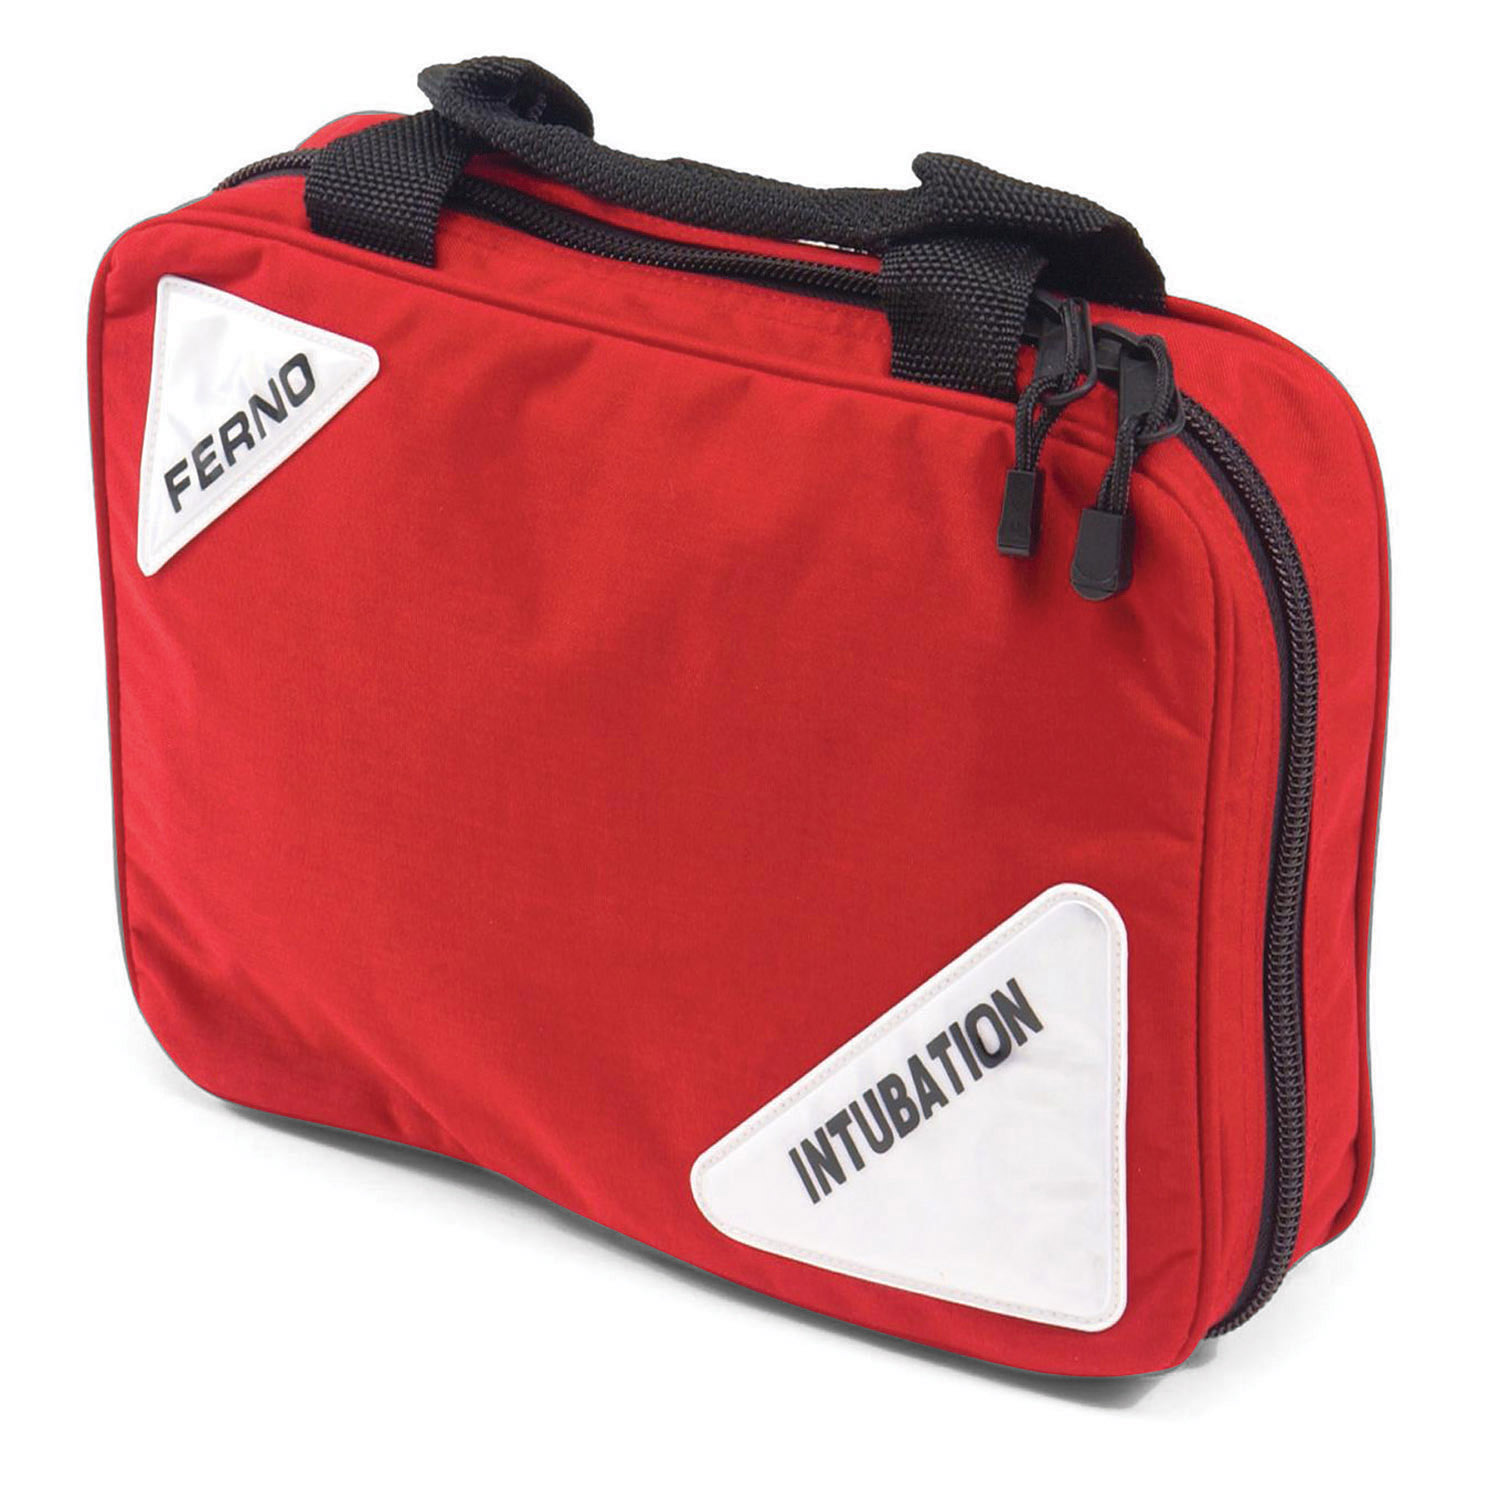 Ferno-Washington Inc. Professional Intubation Mini Bag